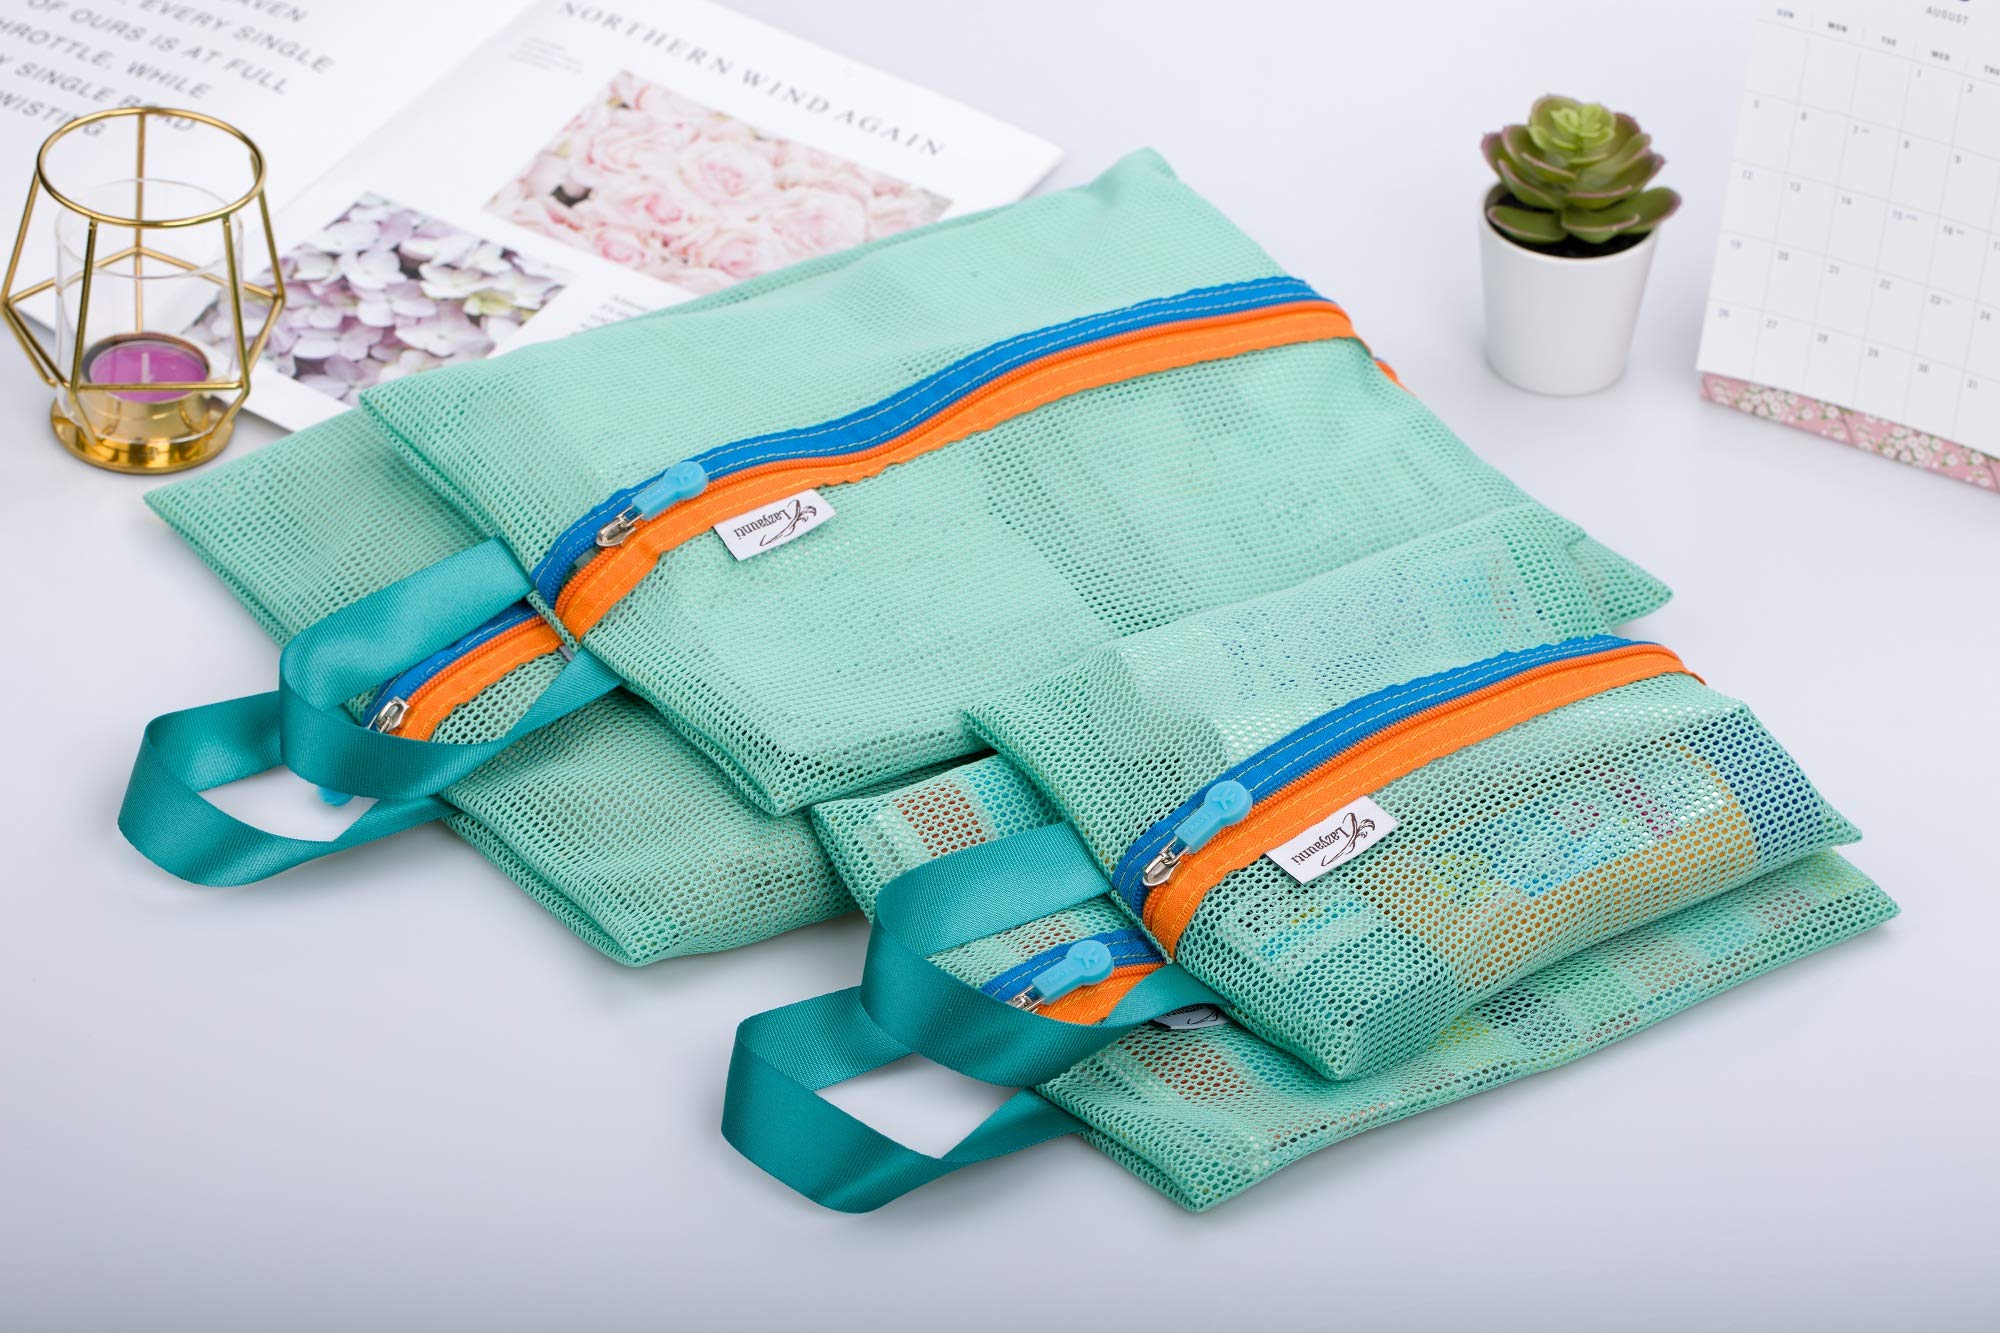 Lazyaunti Mesh Storage Bags Travel Organizer for Cosmetic Makeup Office Supplies Mesh Zipper Pouch Pencil Bag Set of 4 Assorted Sizes (Mint)